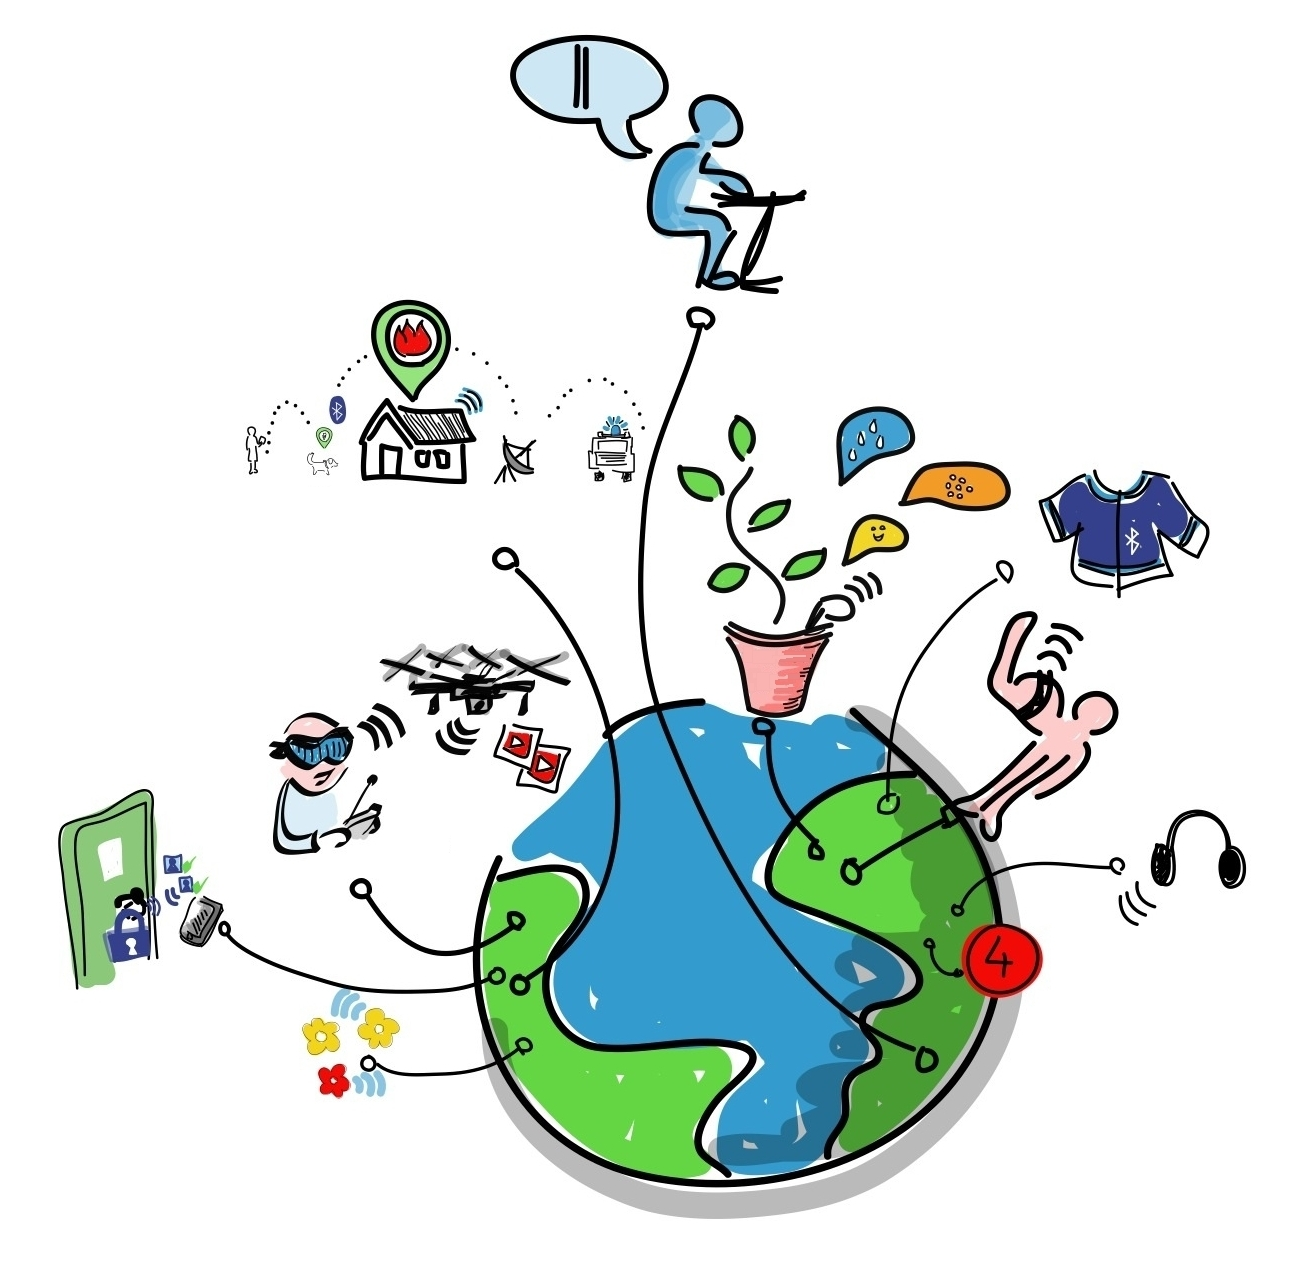 File:Internet of Things.jpg - Wikimedia Commons